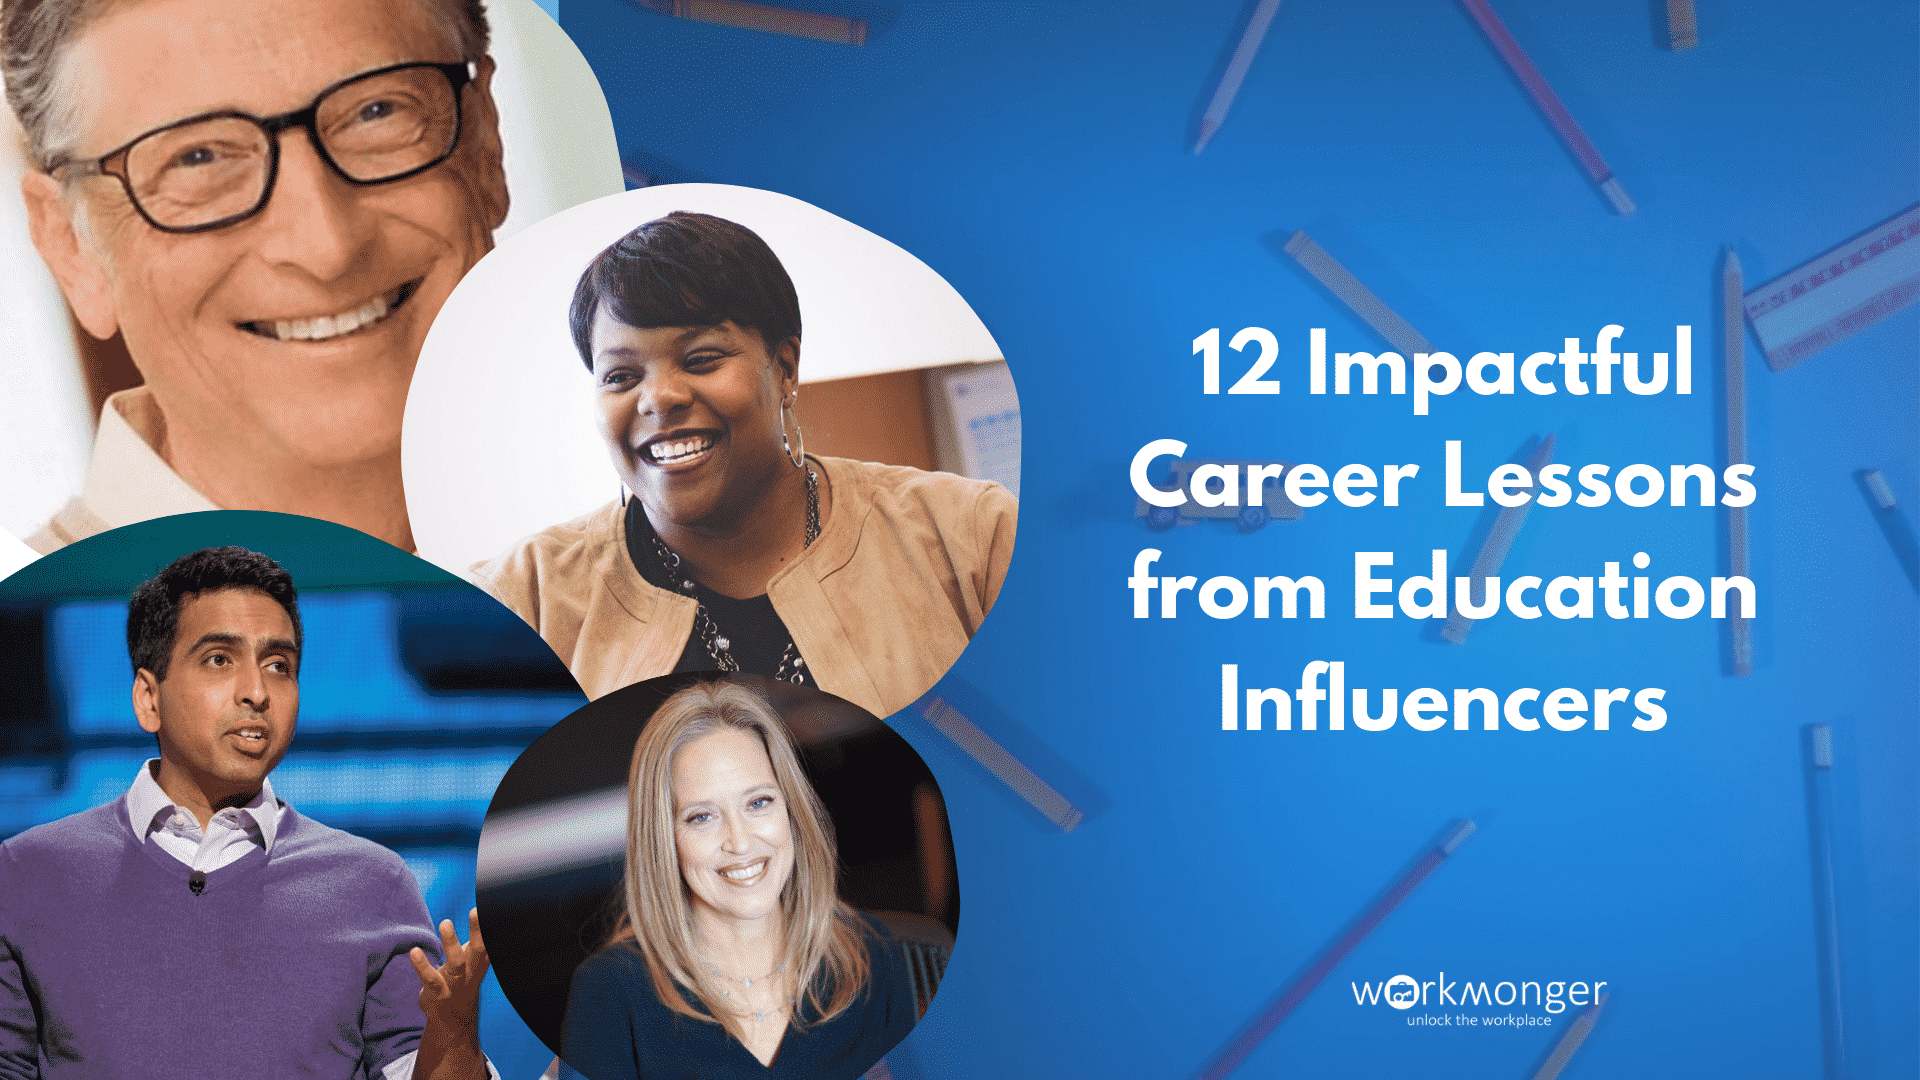 WorkMonger Education Career Advice For Non-Teaching Education Professionals -12 Impactful Career Lessons From Education Influencers